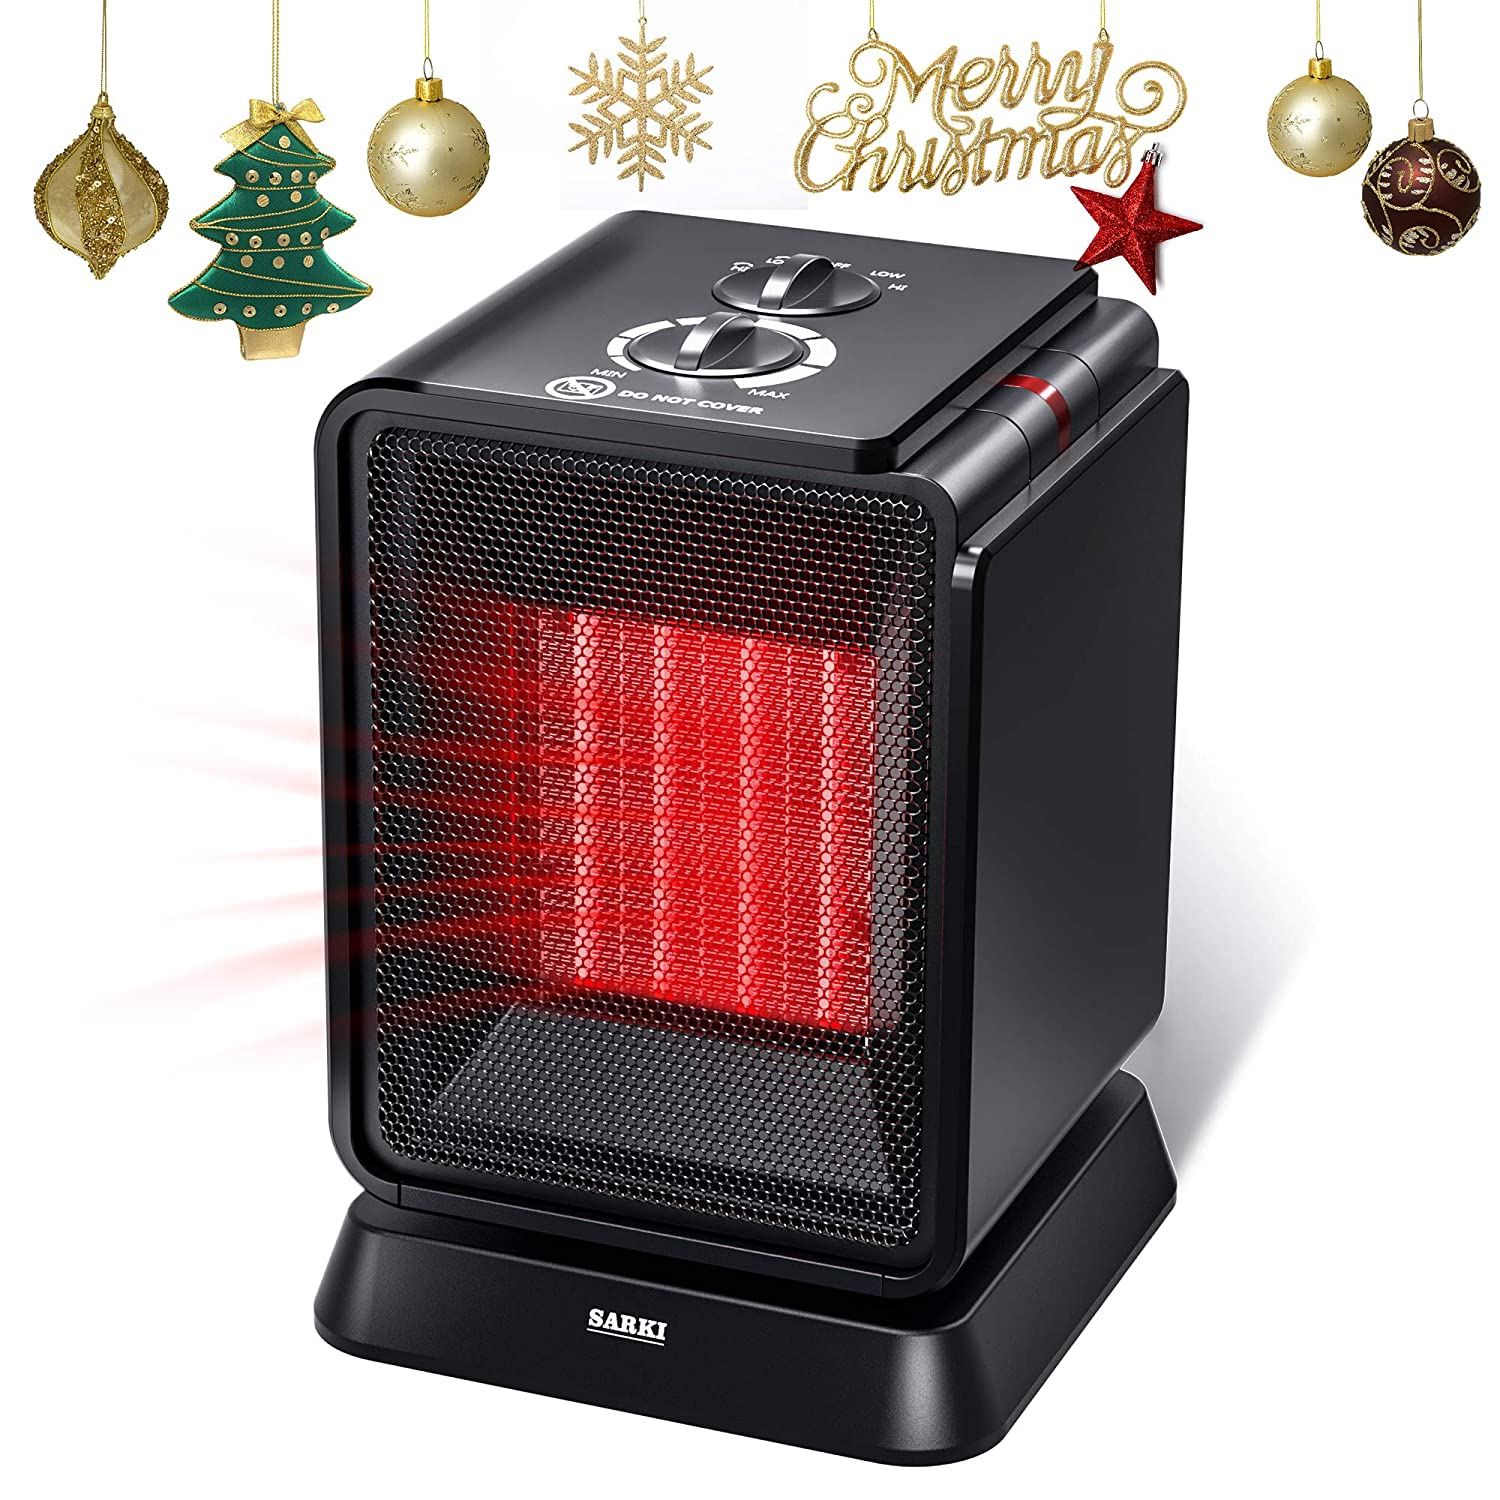 Personal Space Heater, 1500W Electric Ceramic Heater, Portable Mini Heater with Adjustable Thermostat, Oscillation, Tip-Over Protection for Desk Floor Office Home Indoor Use 1500W Mini Heater